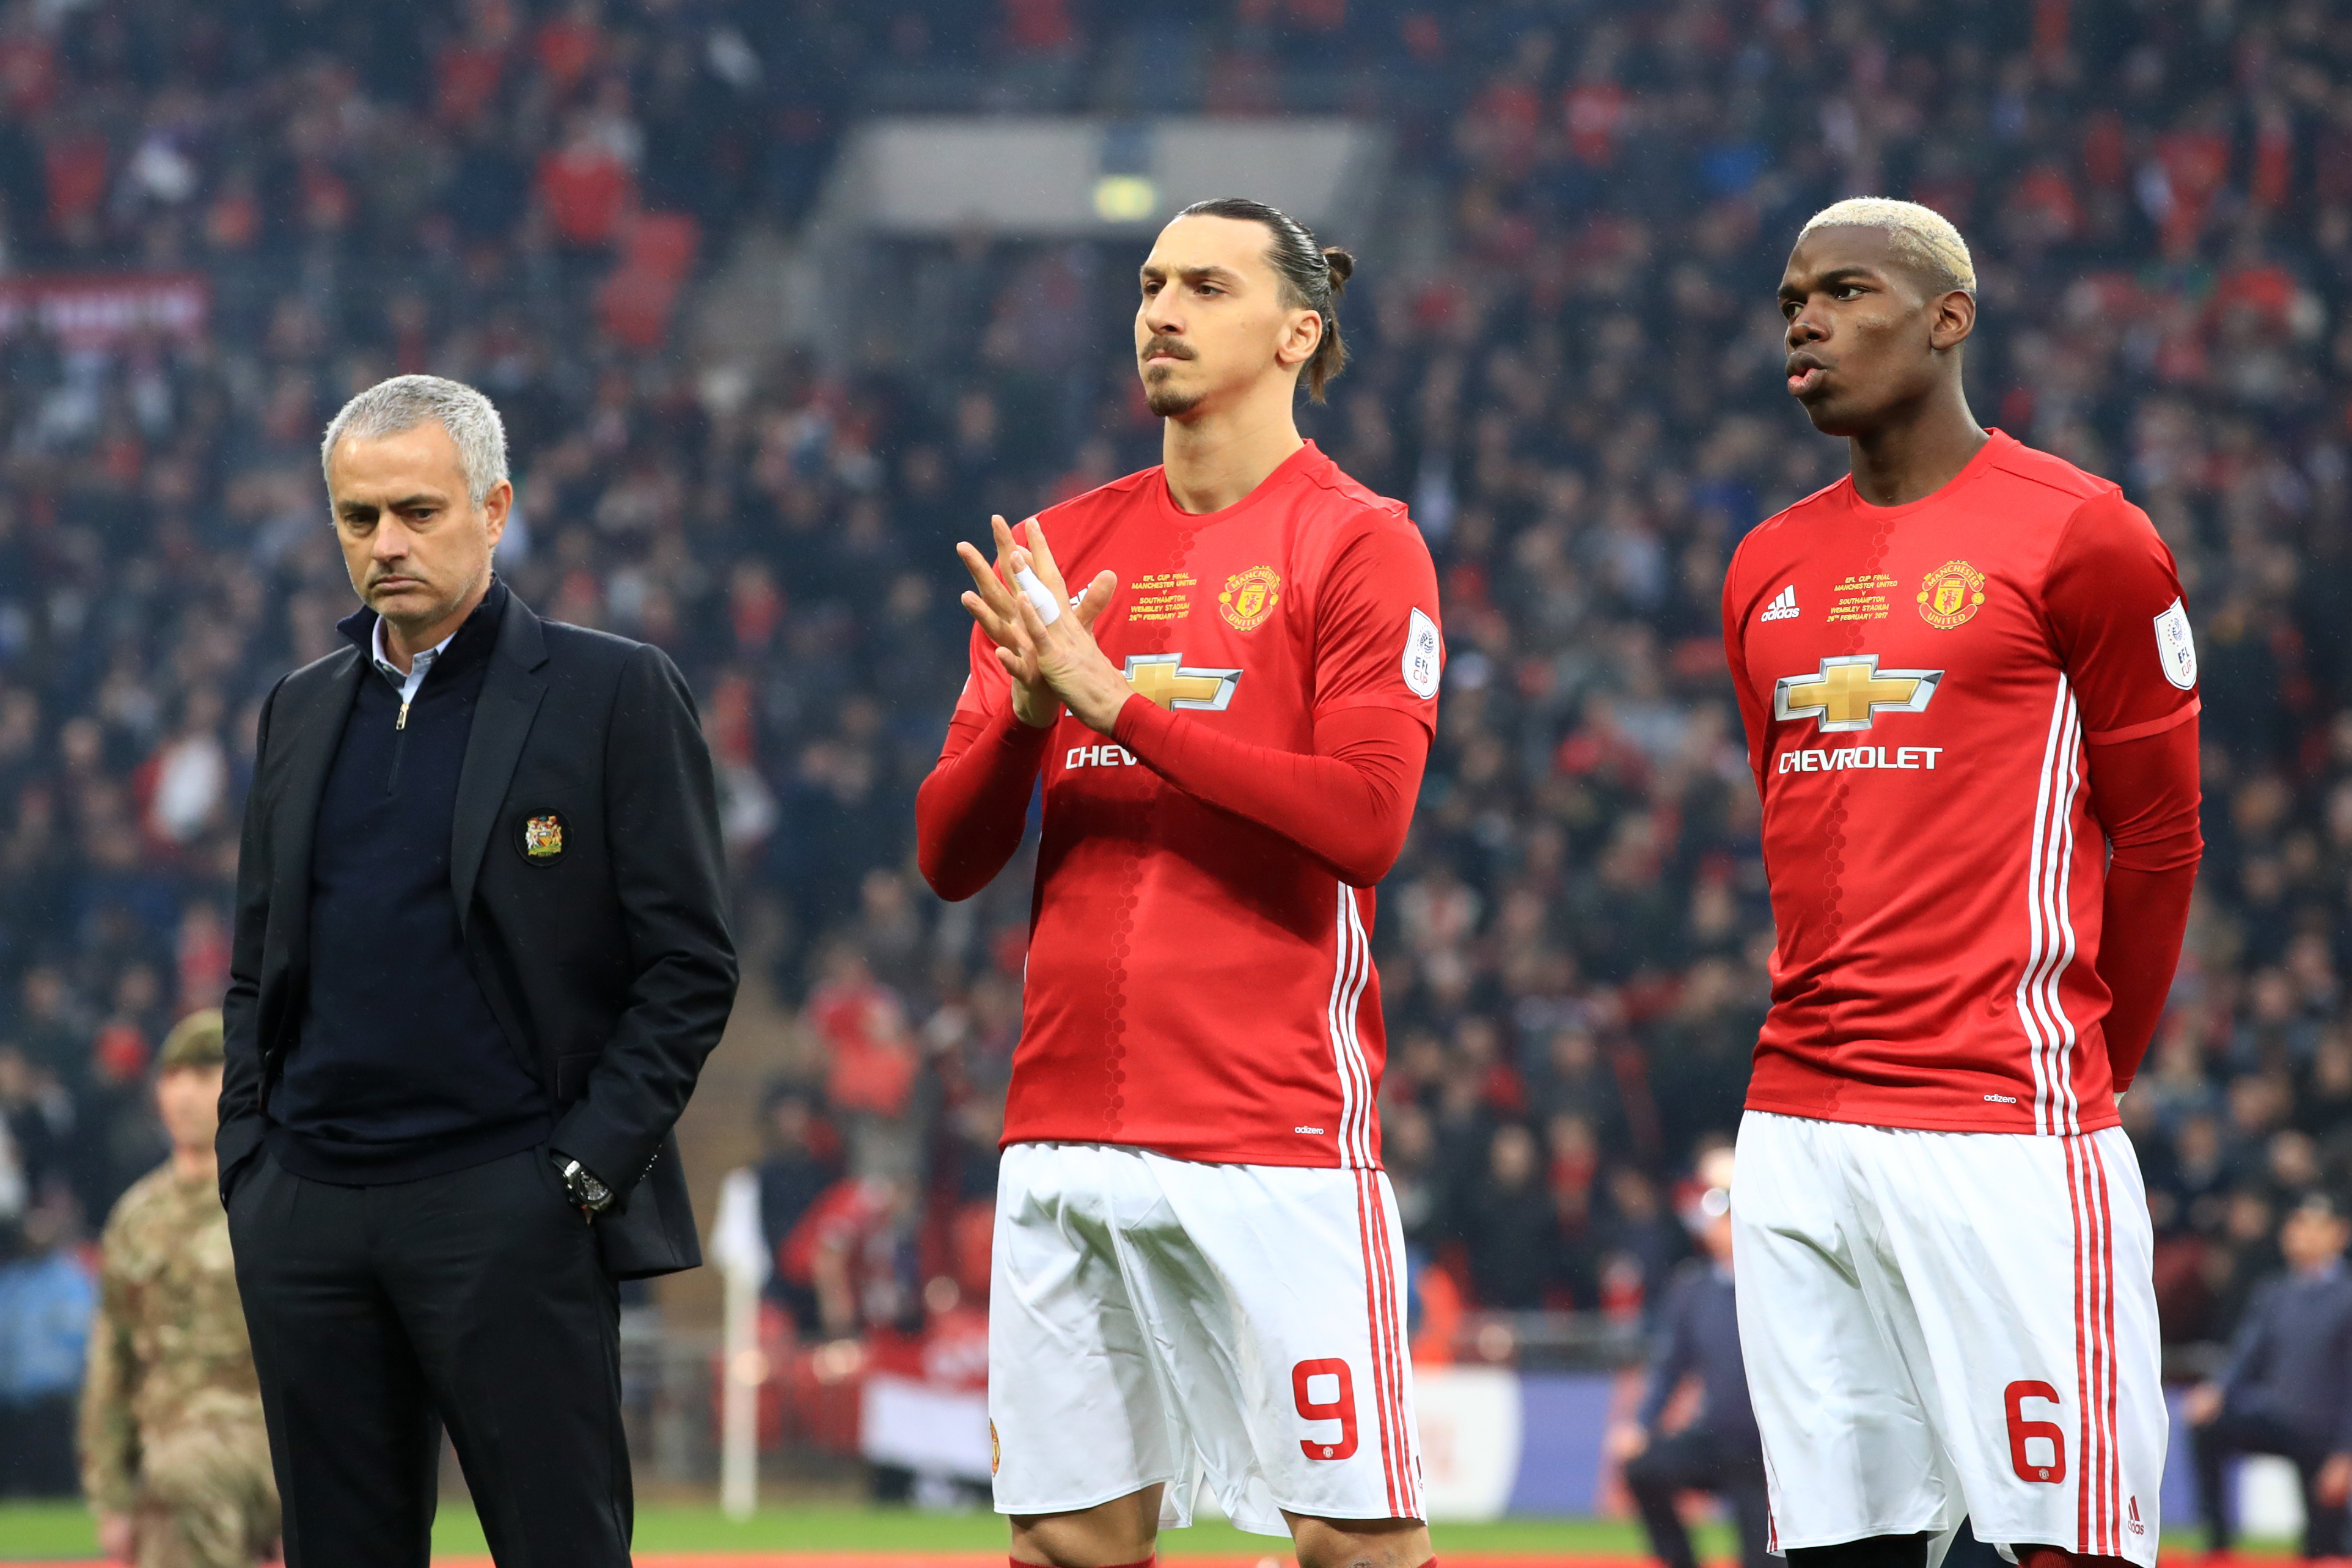 Zlatan Ibrahimovic this winter could move to FC